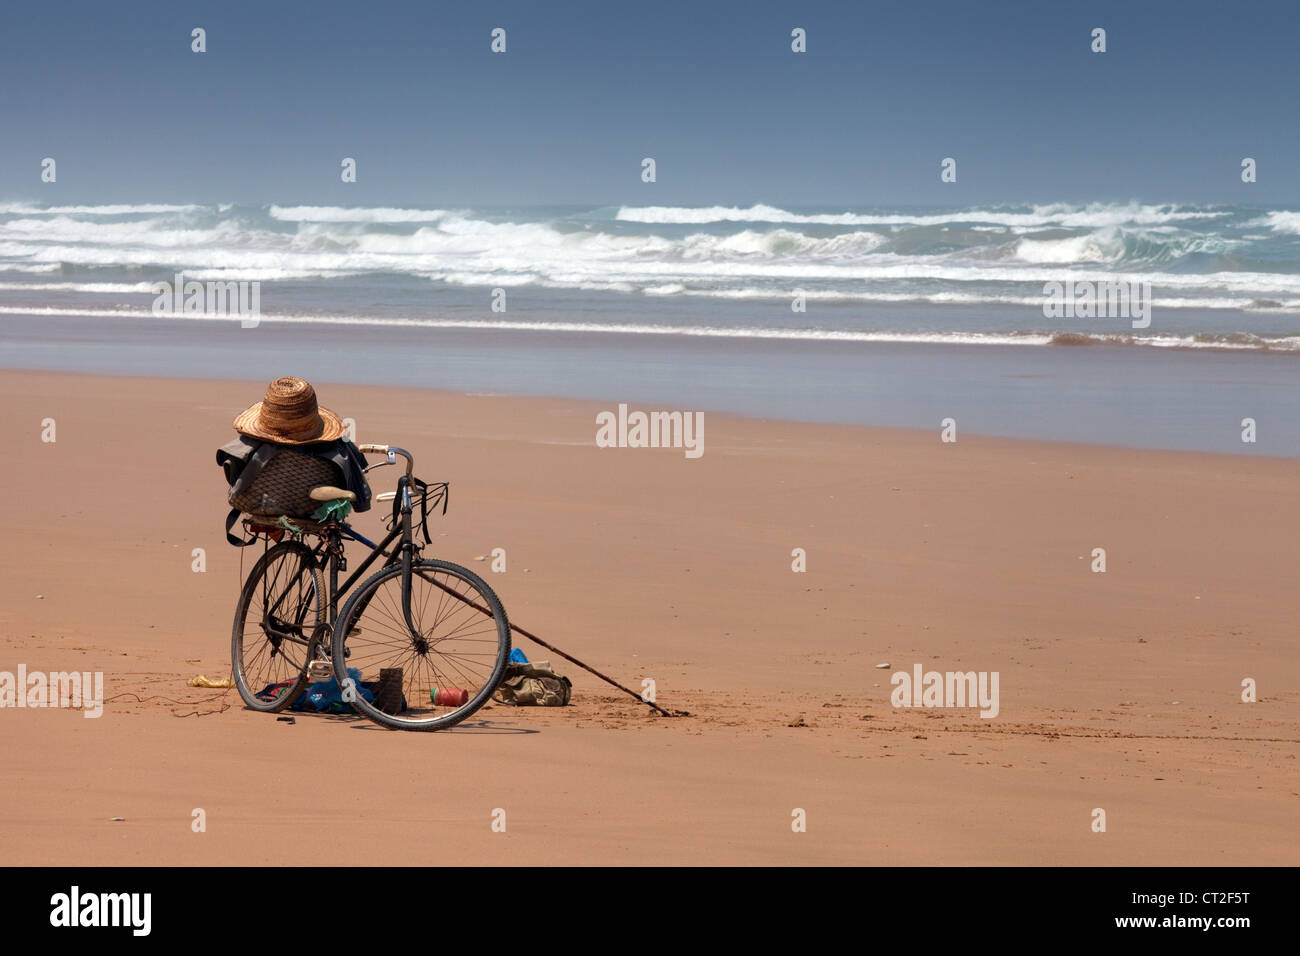 a-local-fishermans-bicycle-on-the-beach-